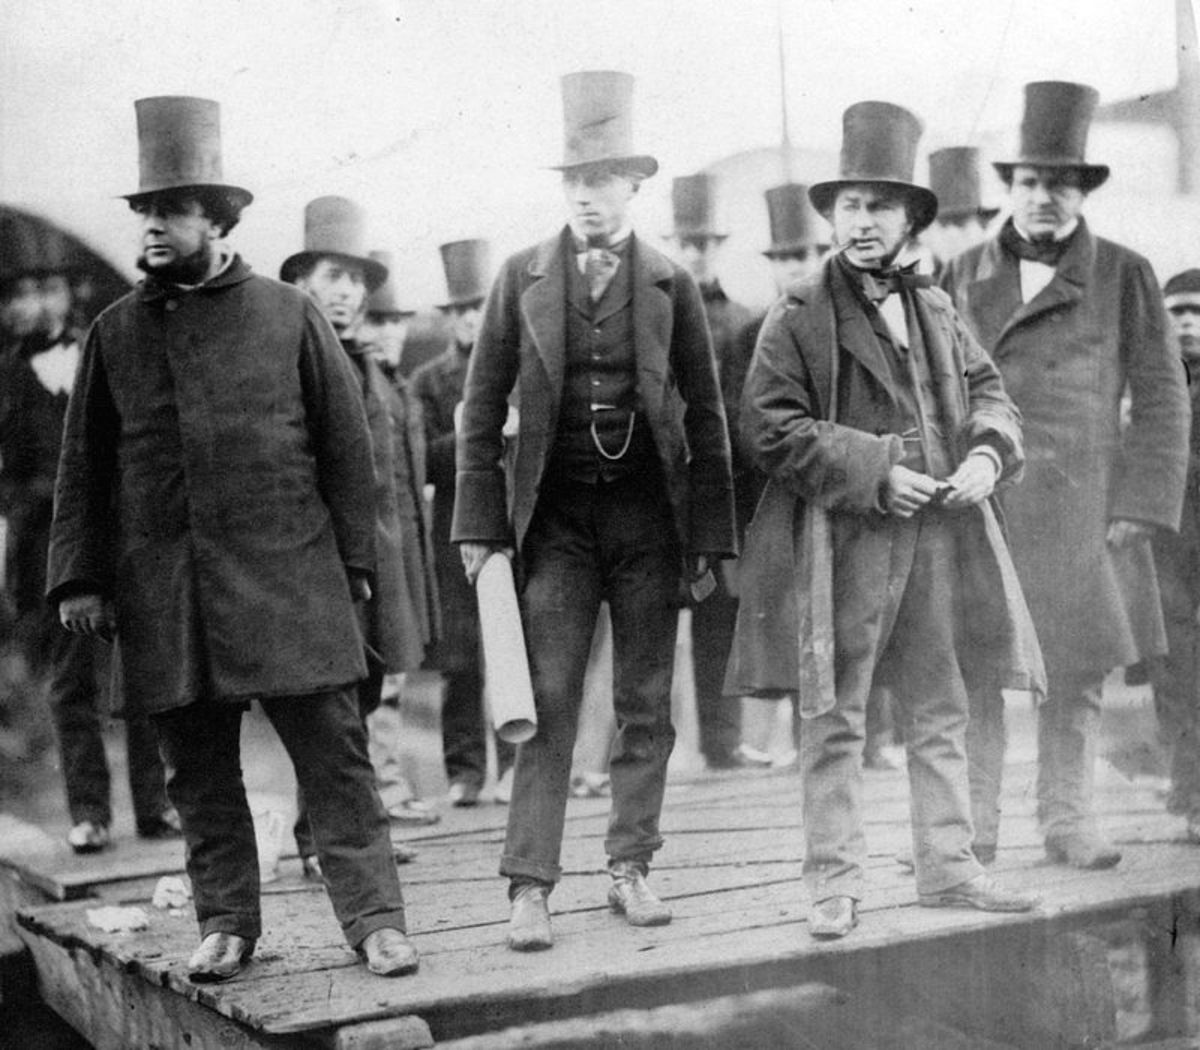 """The great British engineer Isambard Kingdom Brunel (second from right) and companions wearing the top hat style known as the """"stovepipe."""""""